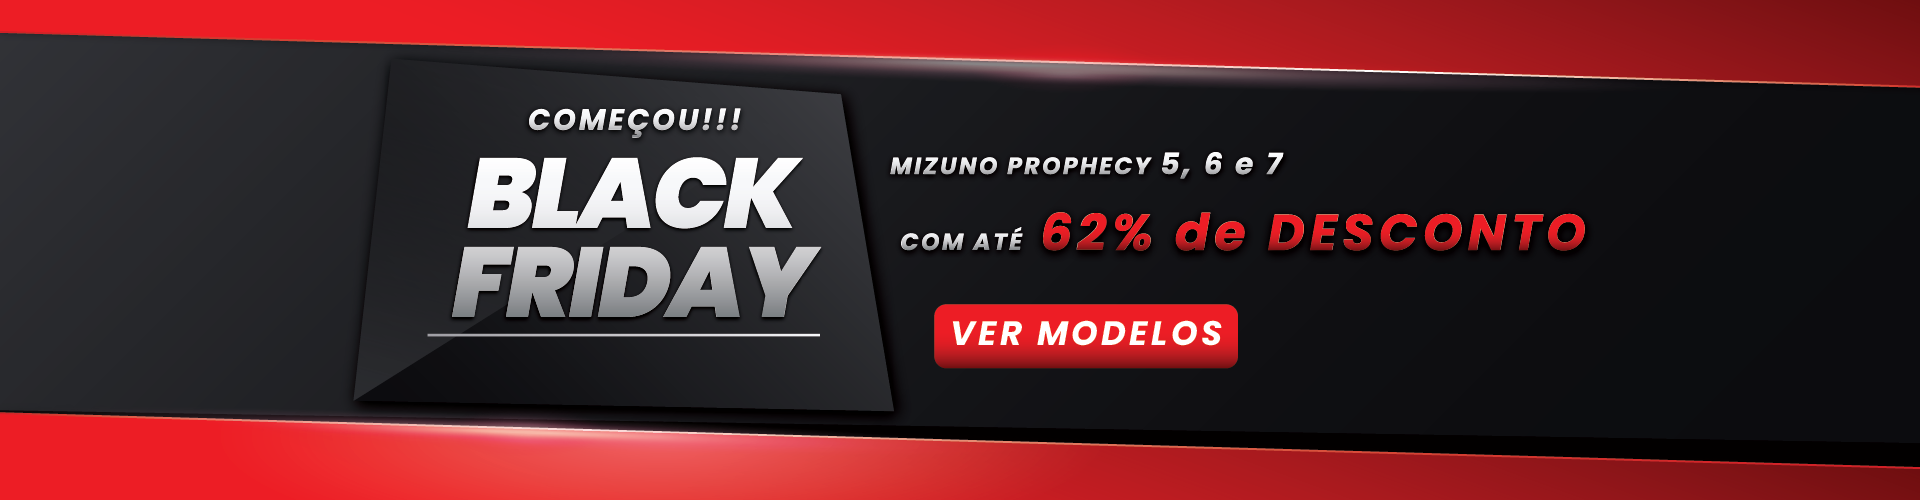 Black_Friday_19_VT